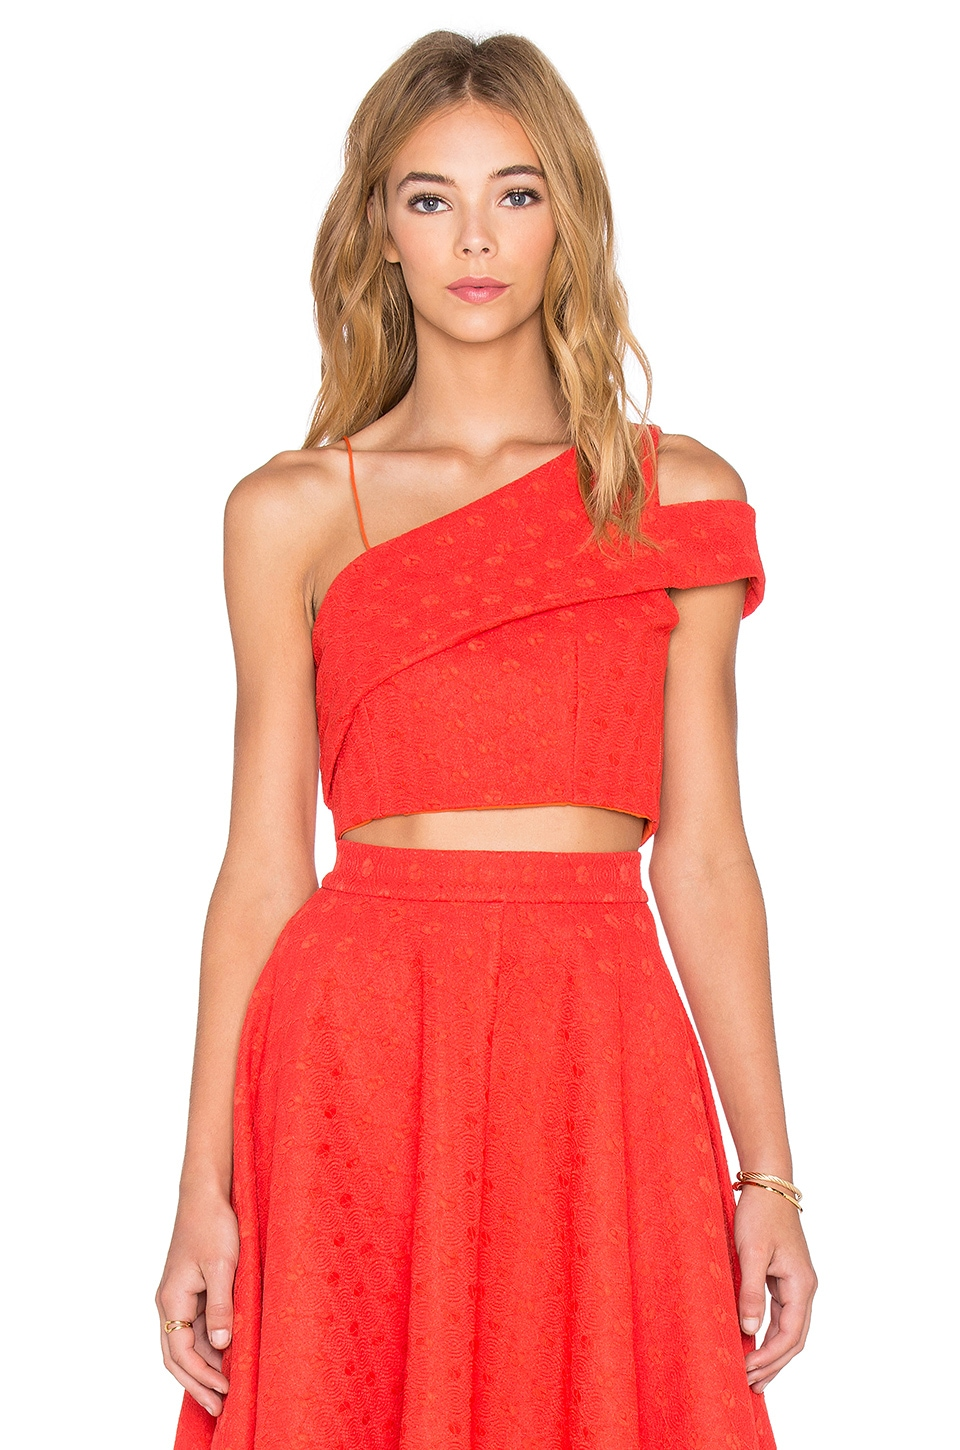 ISLA_CO Spoke Crop Top in Red